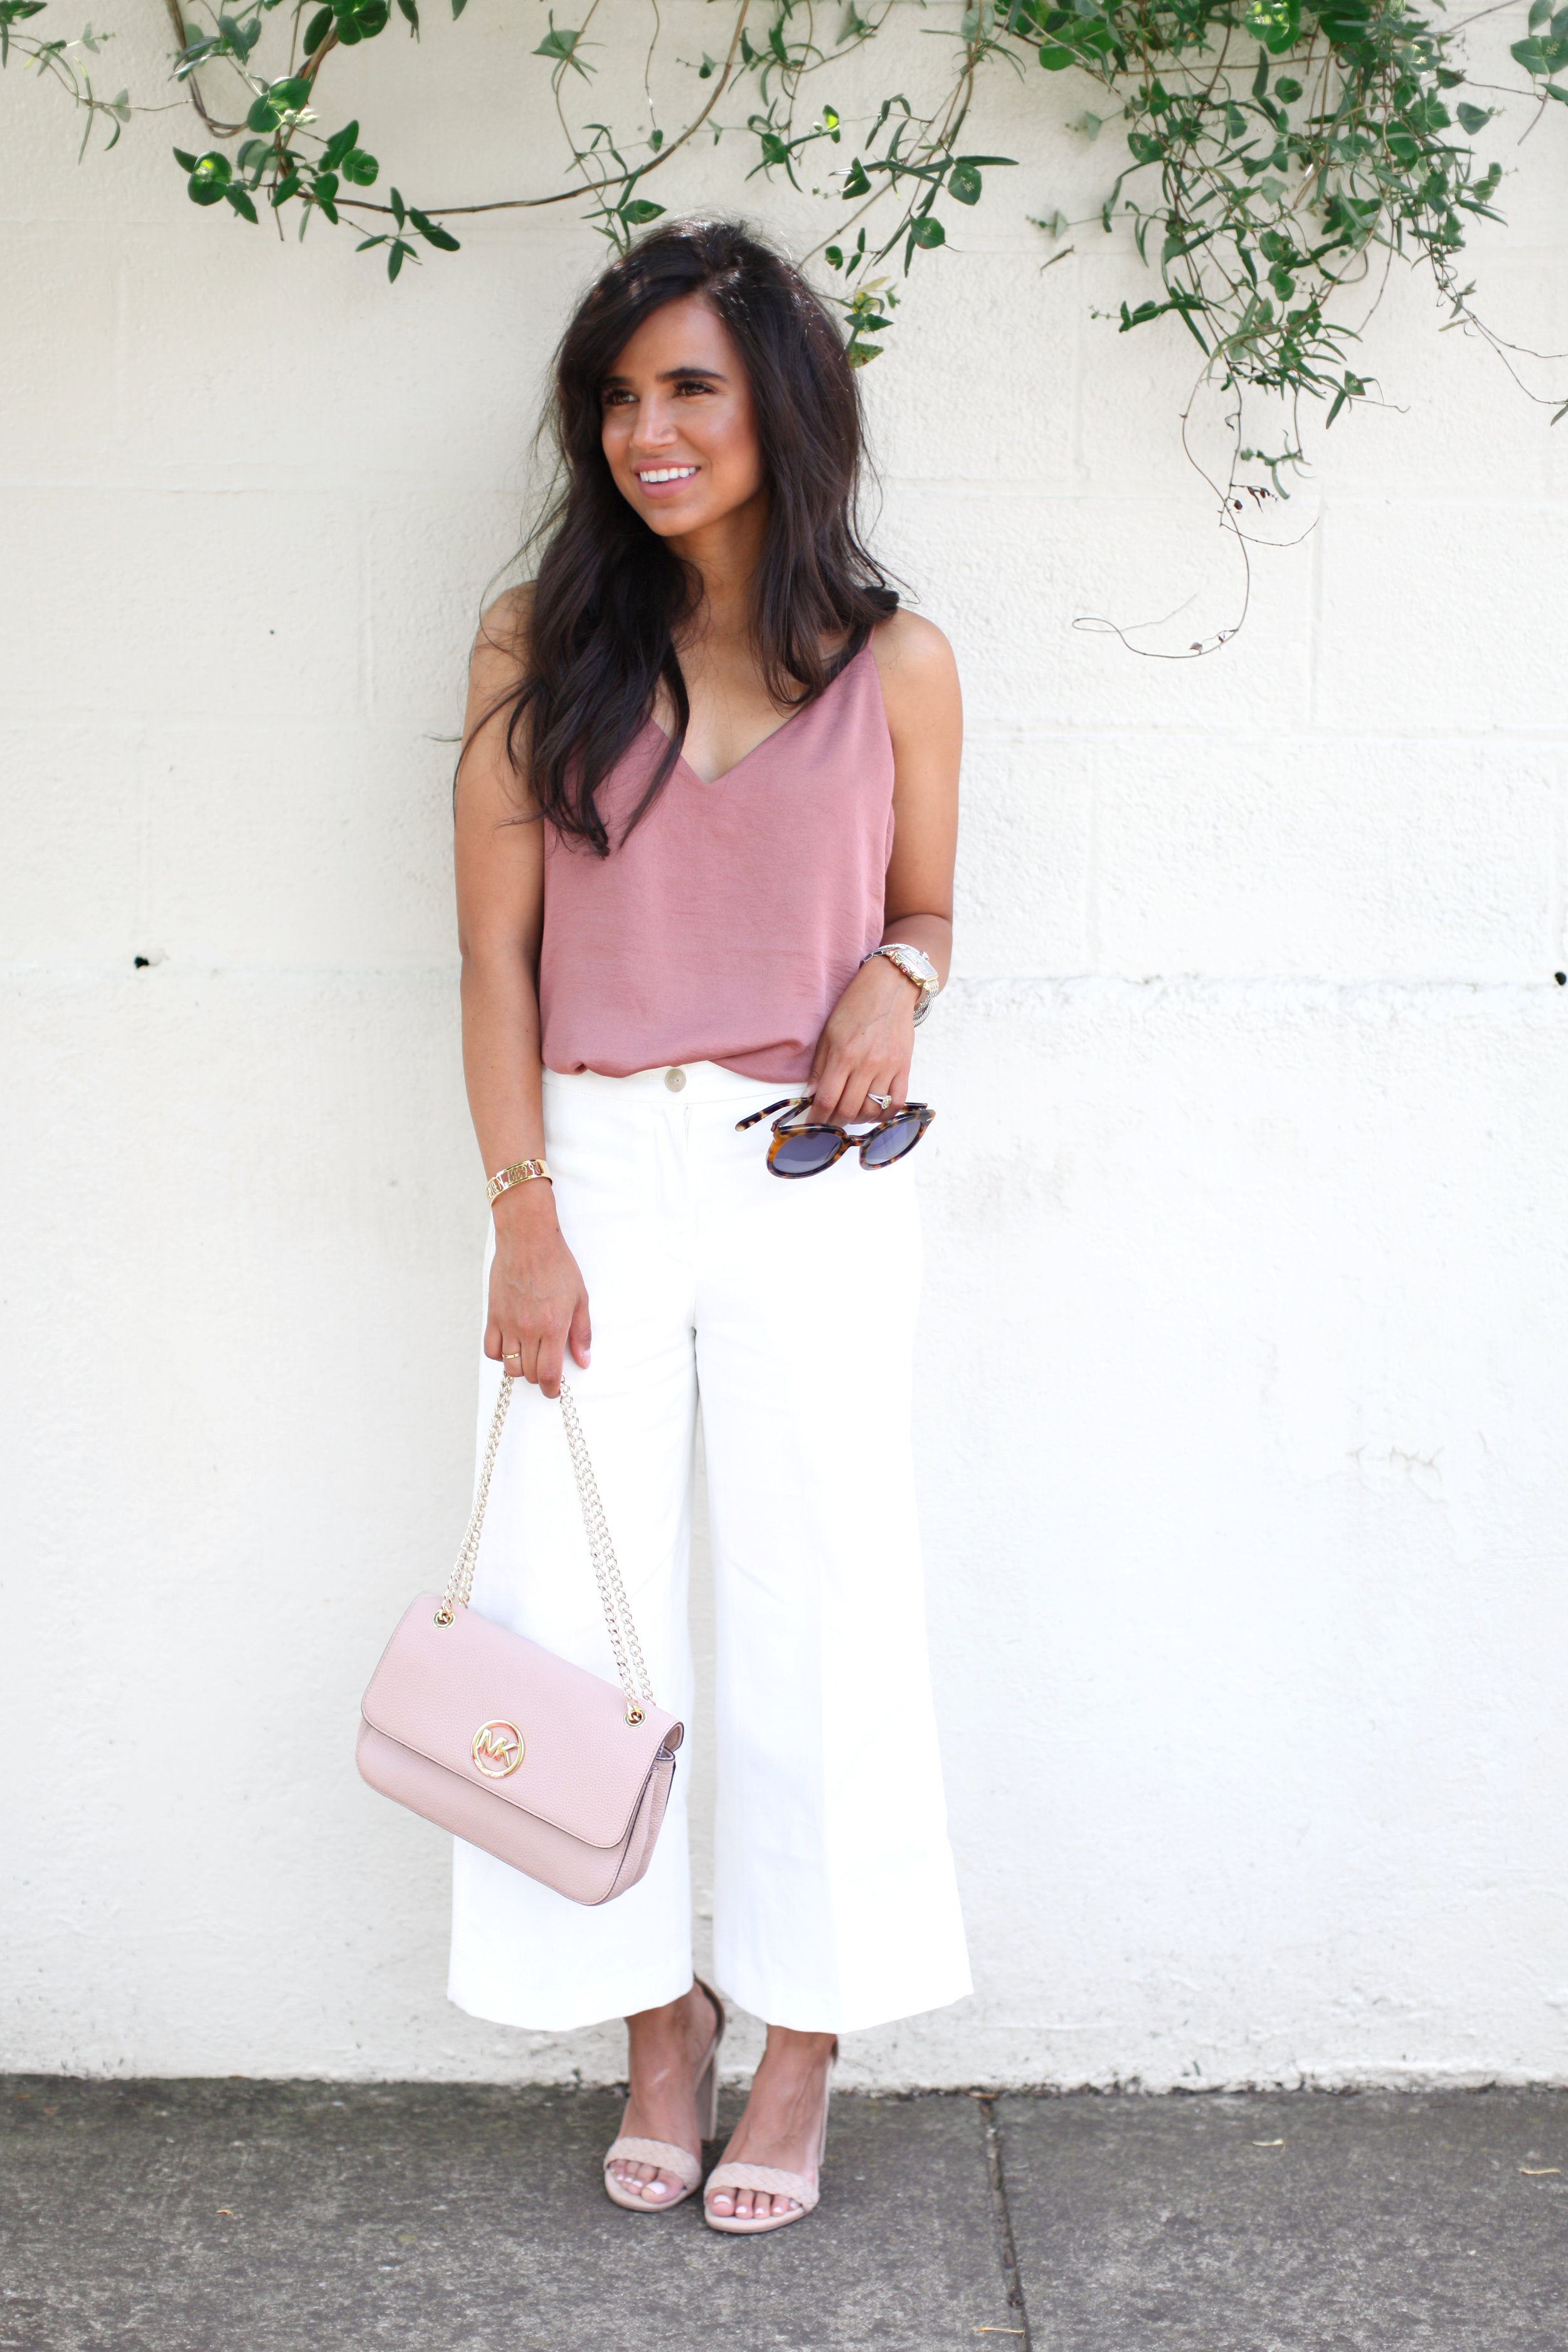 I HAVE THIS CAMI IN EVERY COLOR! IT'S A SUMMER MUST HAVE! - TOP : EXPRESS (SHOP HERE)PANTS : ANN TAYLOR (SHOP HERE)SHOES : STEVE MADDEN (SHOP HERE)HANDBAG : MICHAEL KORS (SIMILAR HERE)SUNNIES : KAREN WALKER (SHOP HERE)